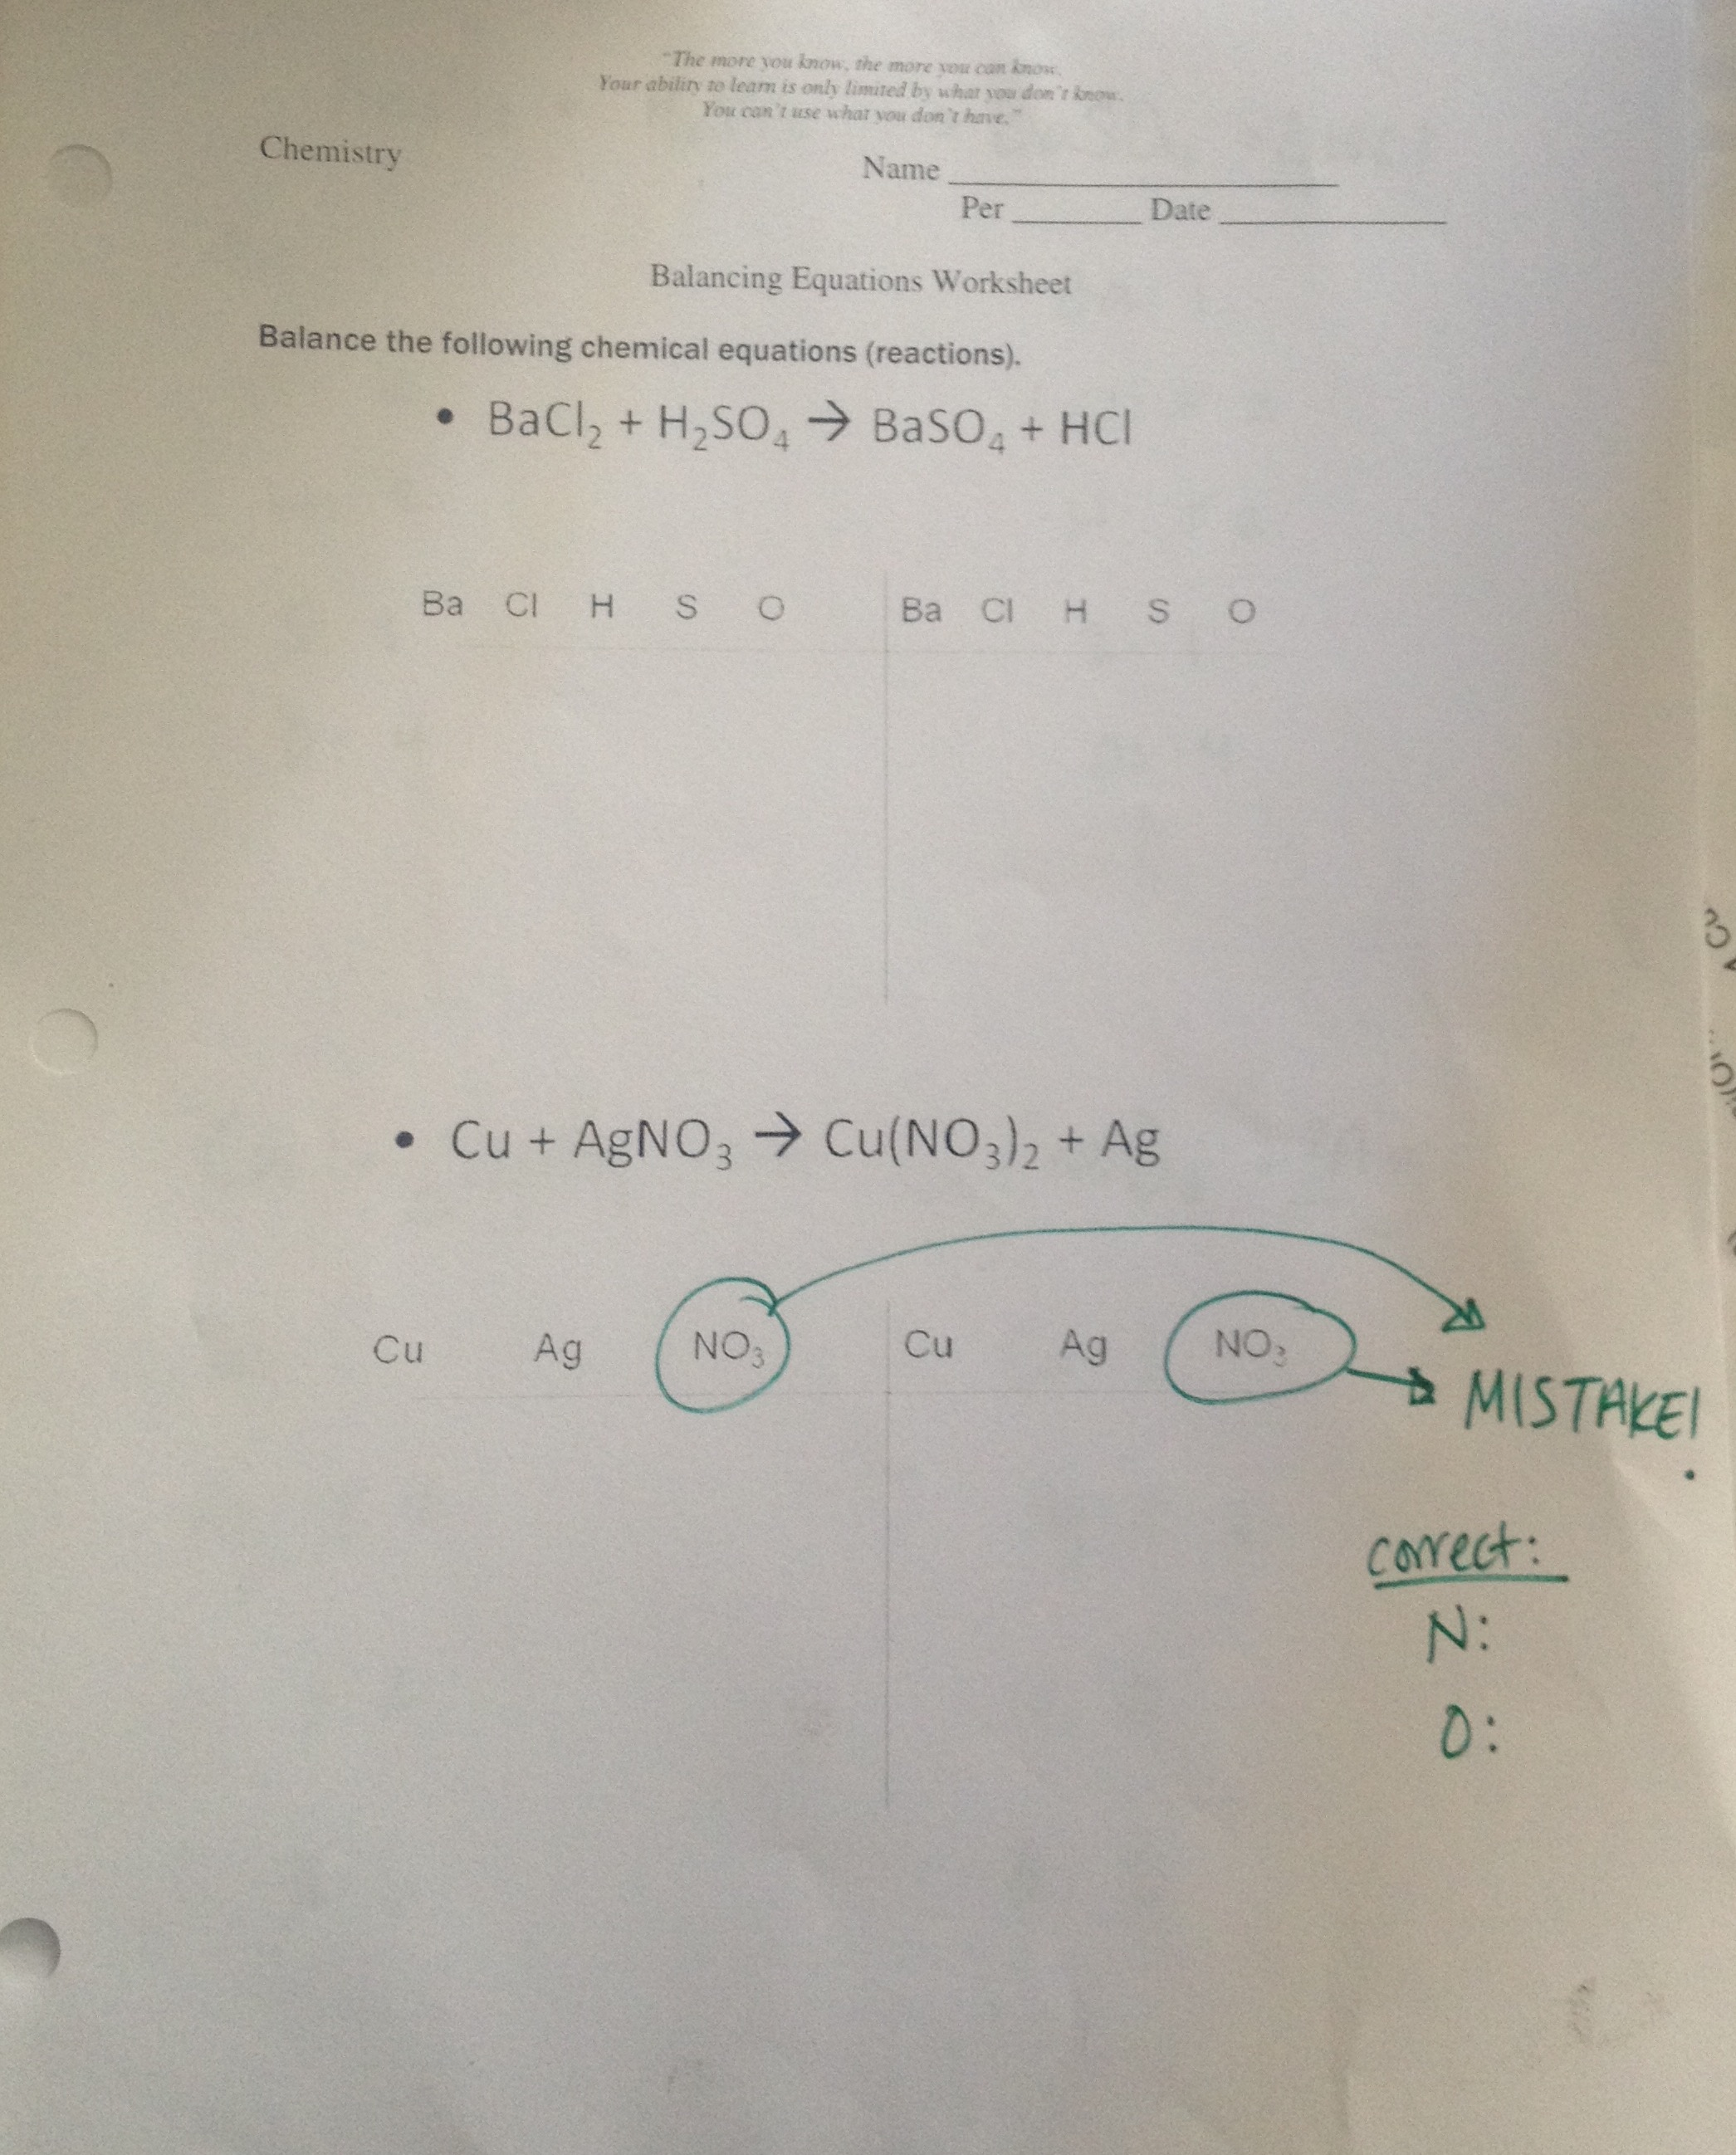 Fifth Grade Algebra Worksheets Pdf Physics  Chemistry  Lesson Plans  The Wesley School Parts Of Speech Quiz Worksheet with Early Algebra Worksheets Excel Class Reviewed  Specific Problems From The Balancing Reactions Packet  Last Page Ox Cart Man Worksheets Word